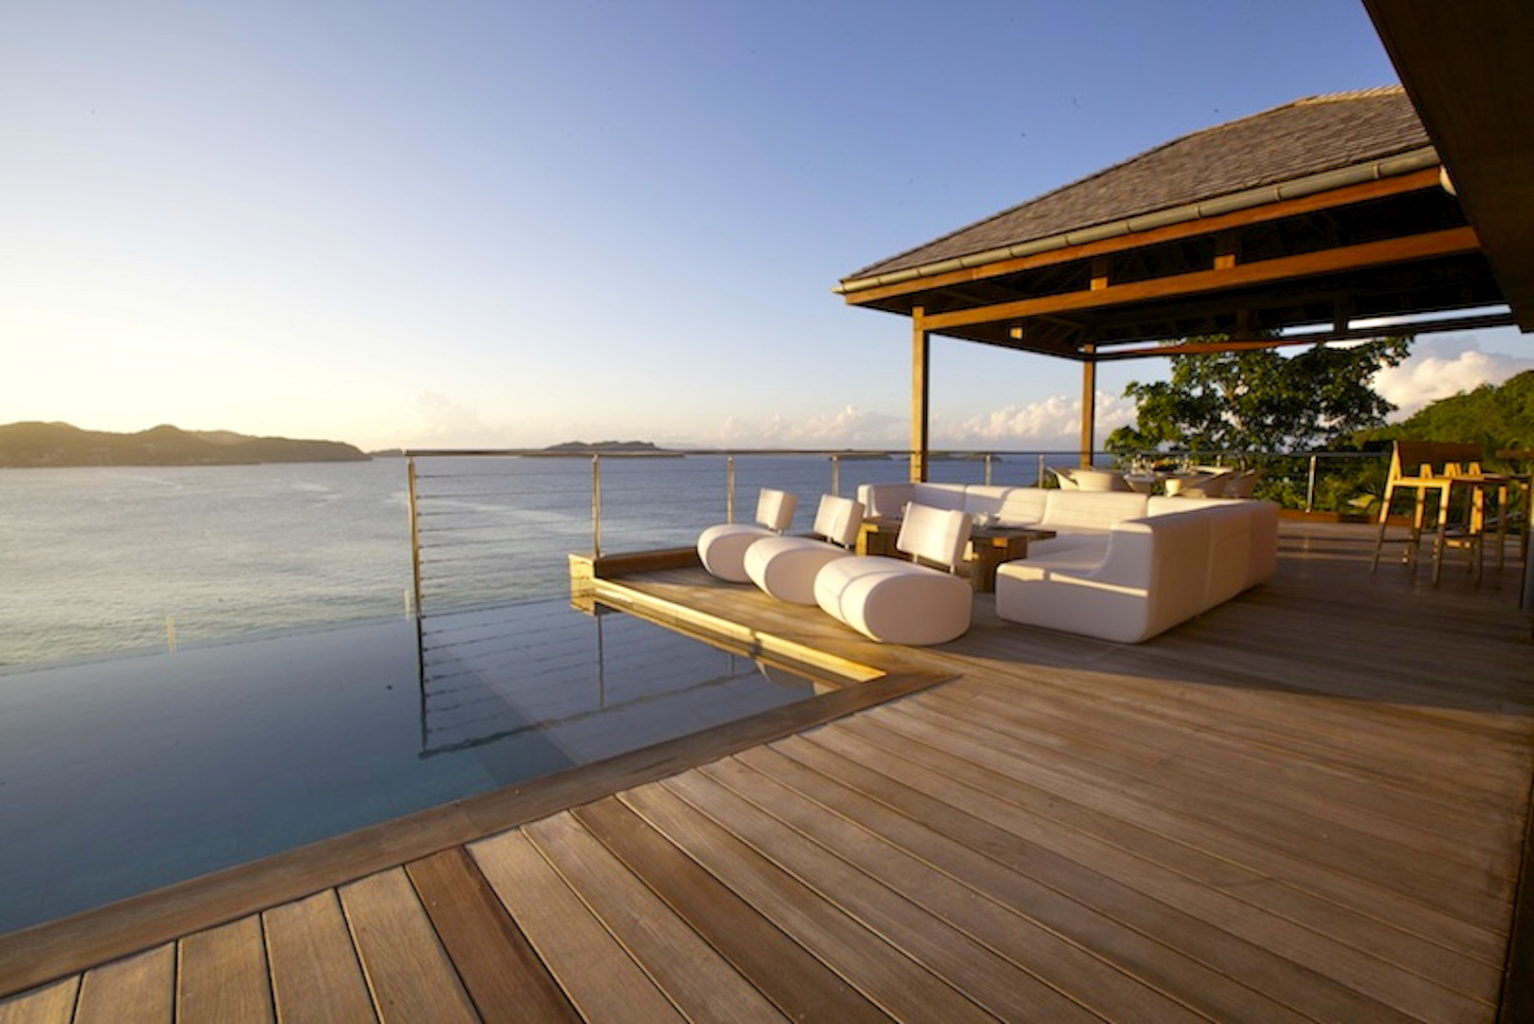 Villa What Else - Balinese Villa for Rent St Barth with Car Rental Included - Ocean view